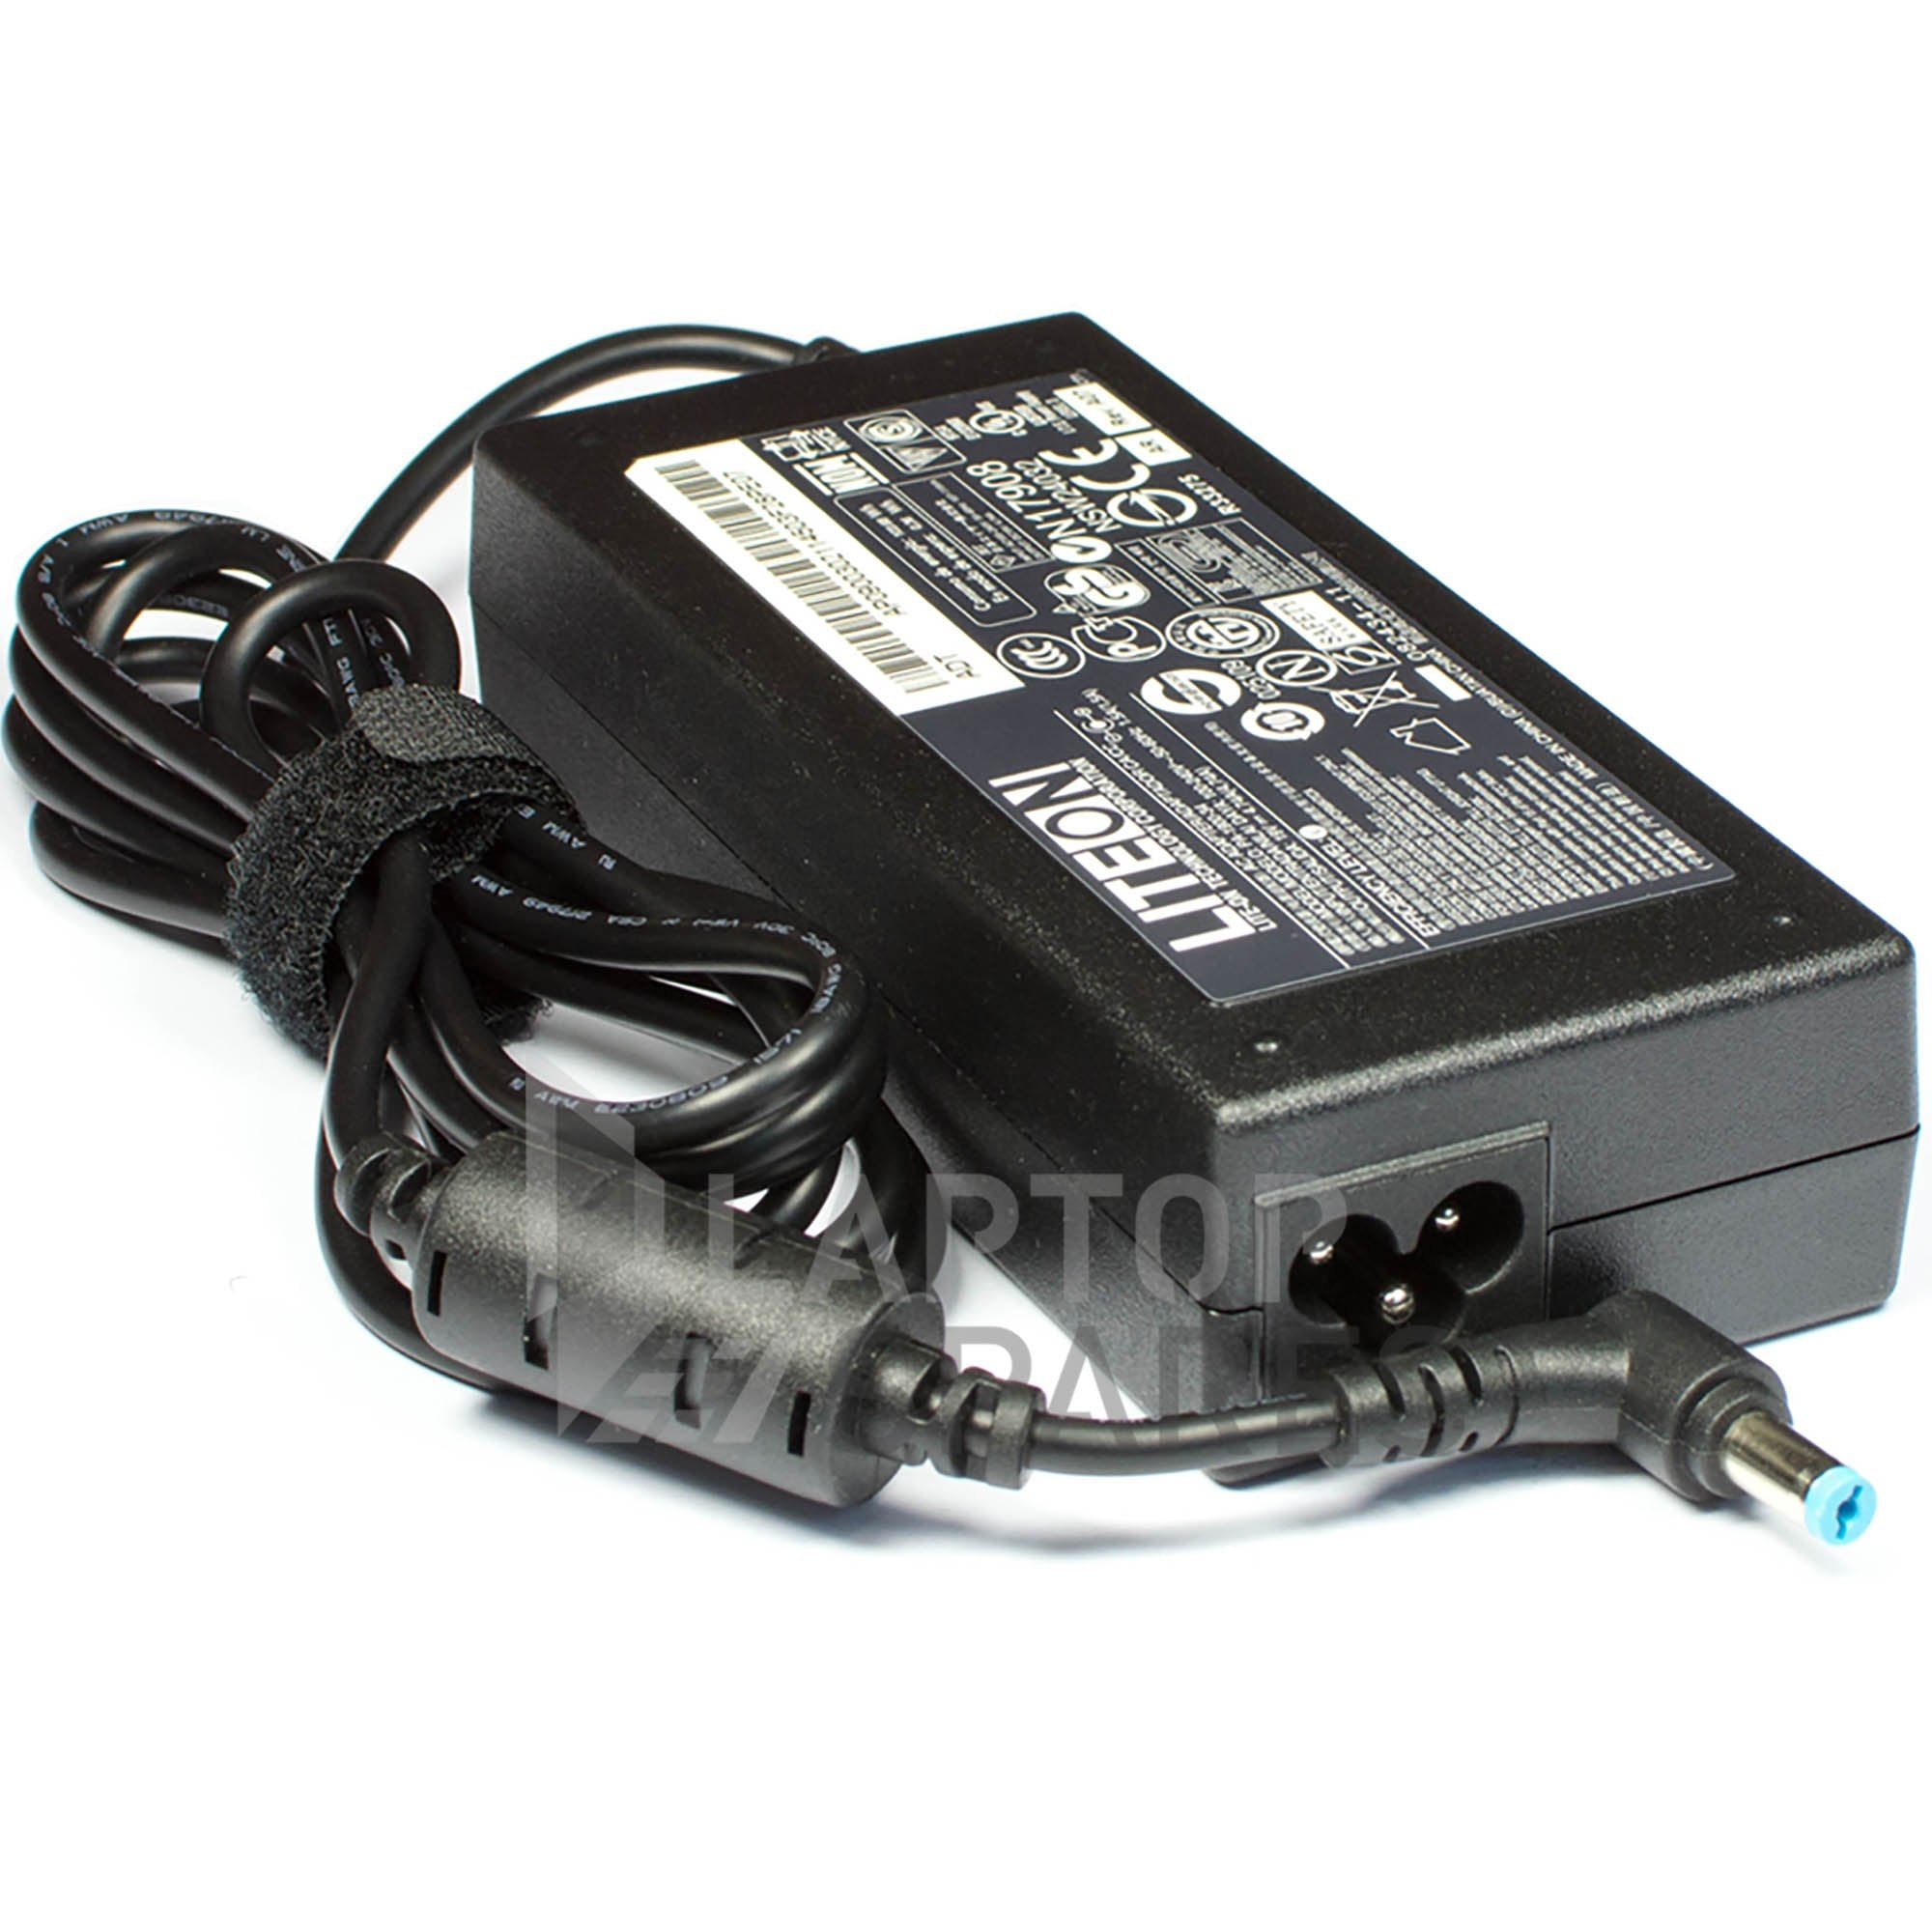 Acer Aspire 3030 3100 3200 Laptop AC Adapter Charger